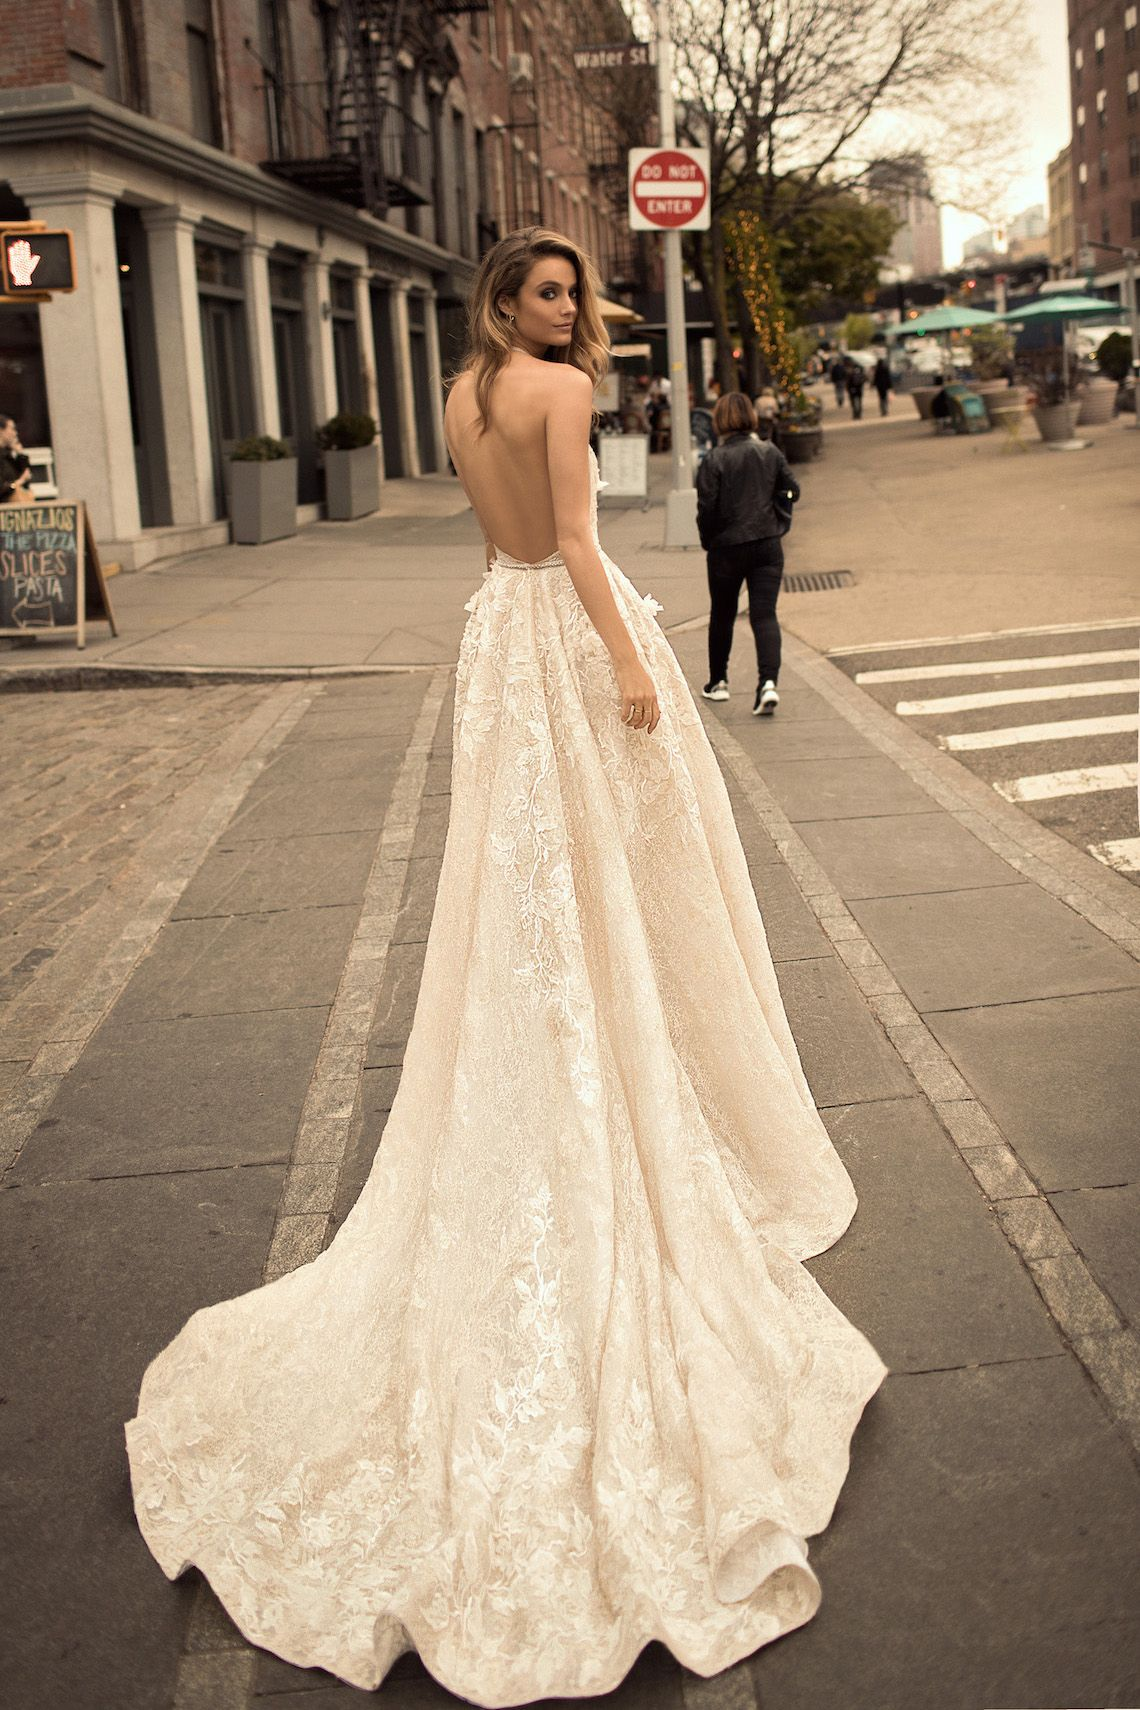 207a75eb64 We re taking a world exclusive first look at the brand new collection of  Berta wedding dresses